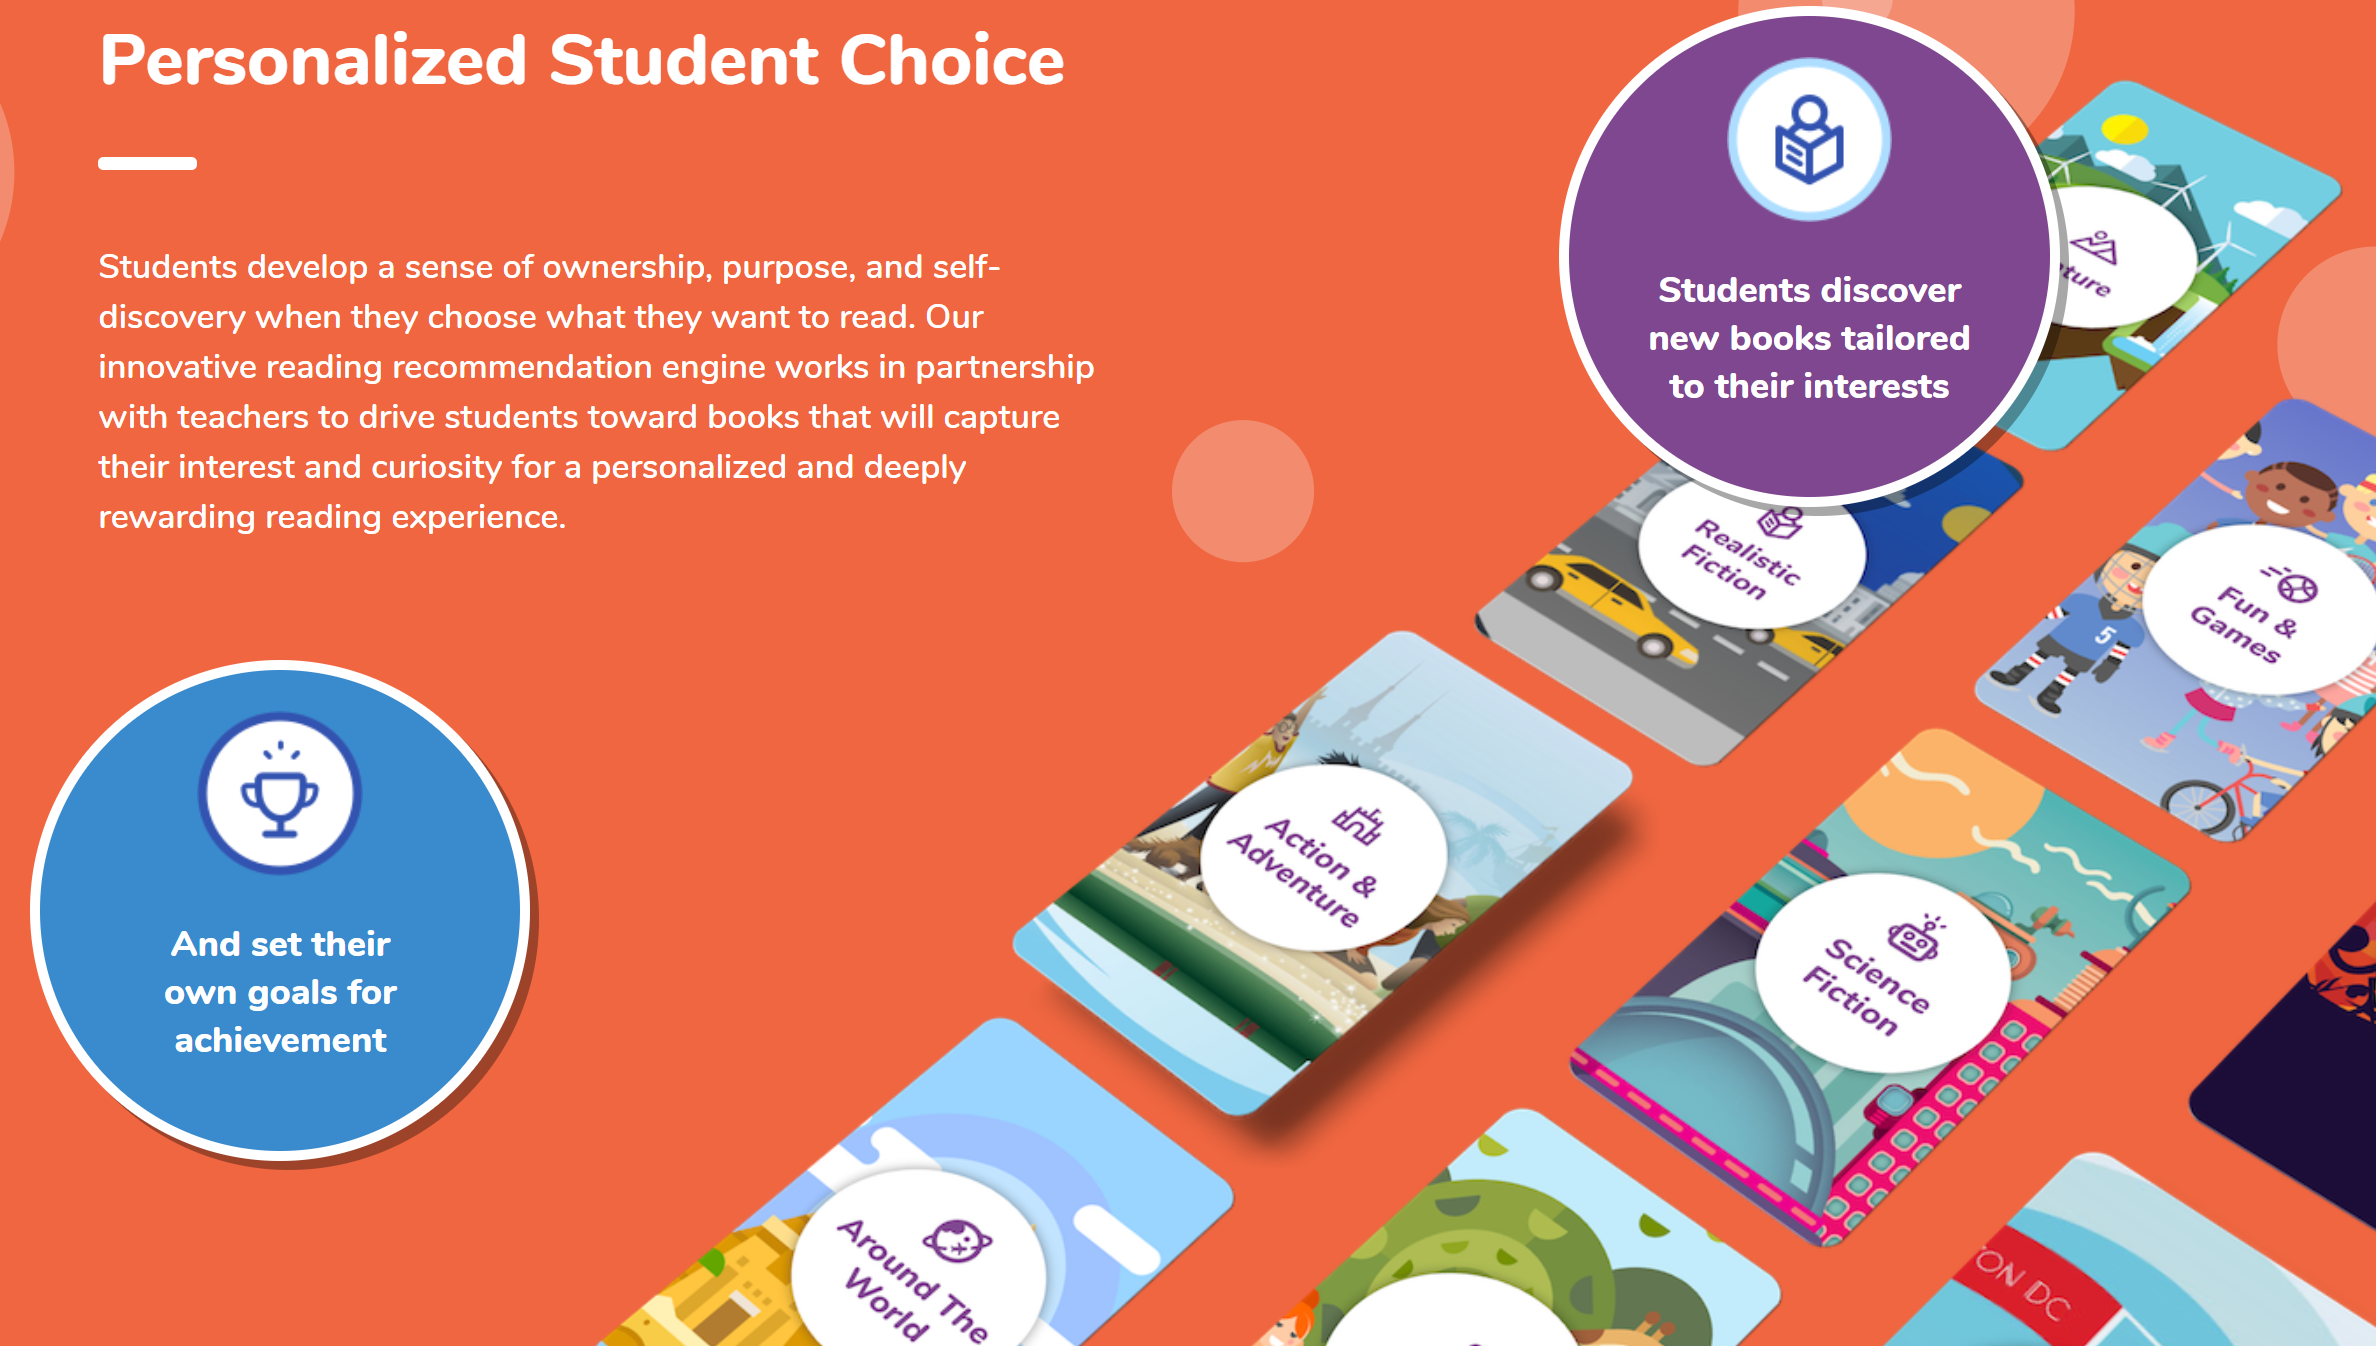 scholastic Personalized student choice_ image promotion (3)